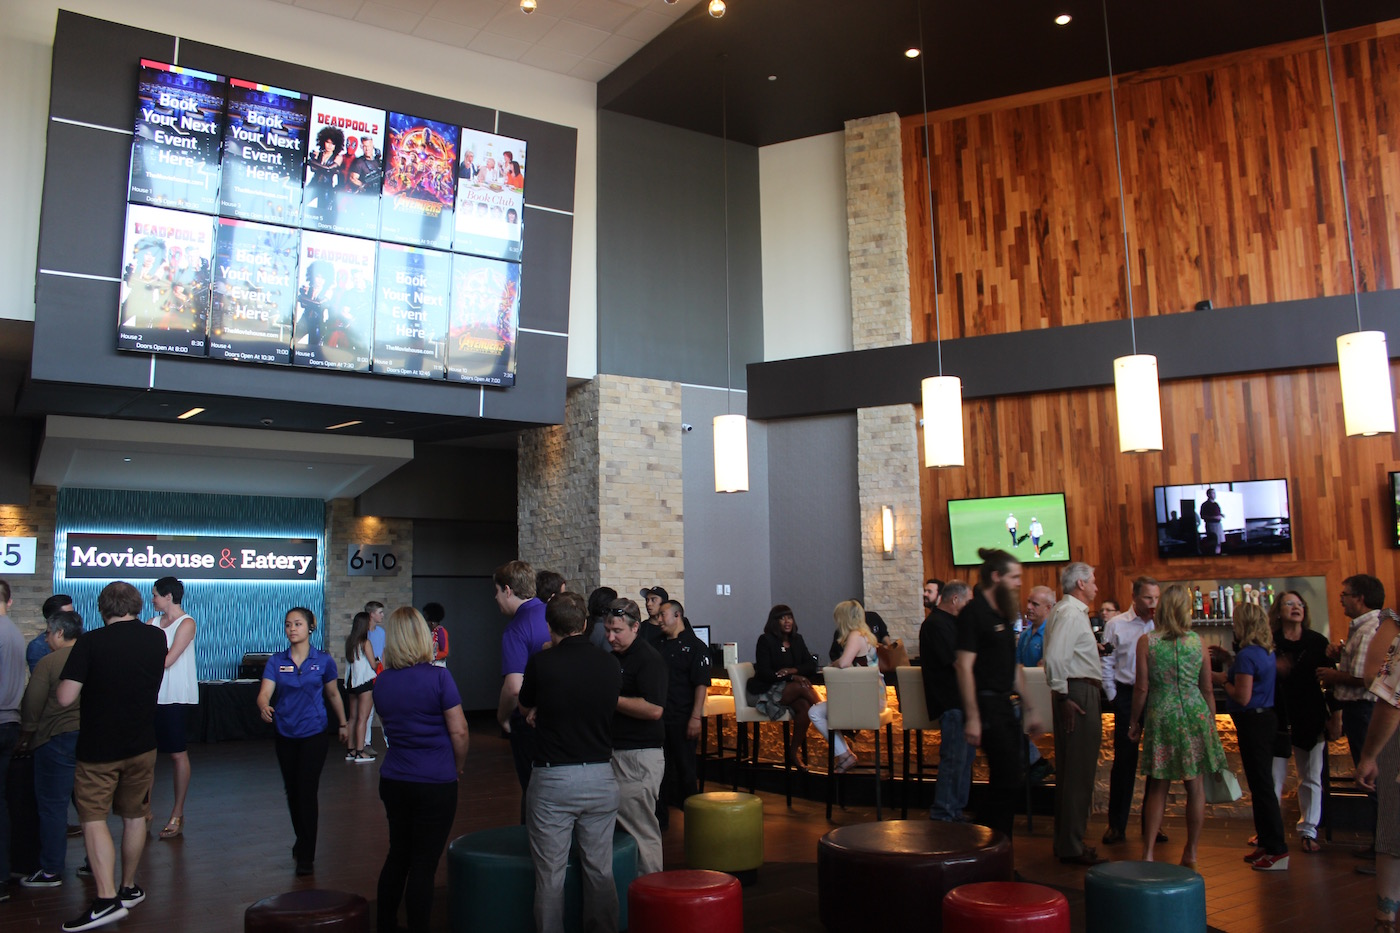 Moviehouse & Eatery Opens in Southwest Austin